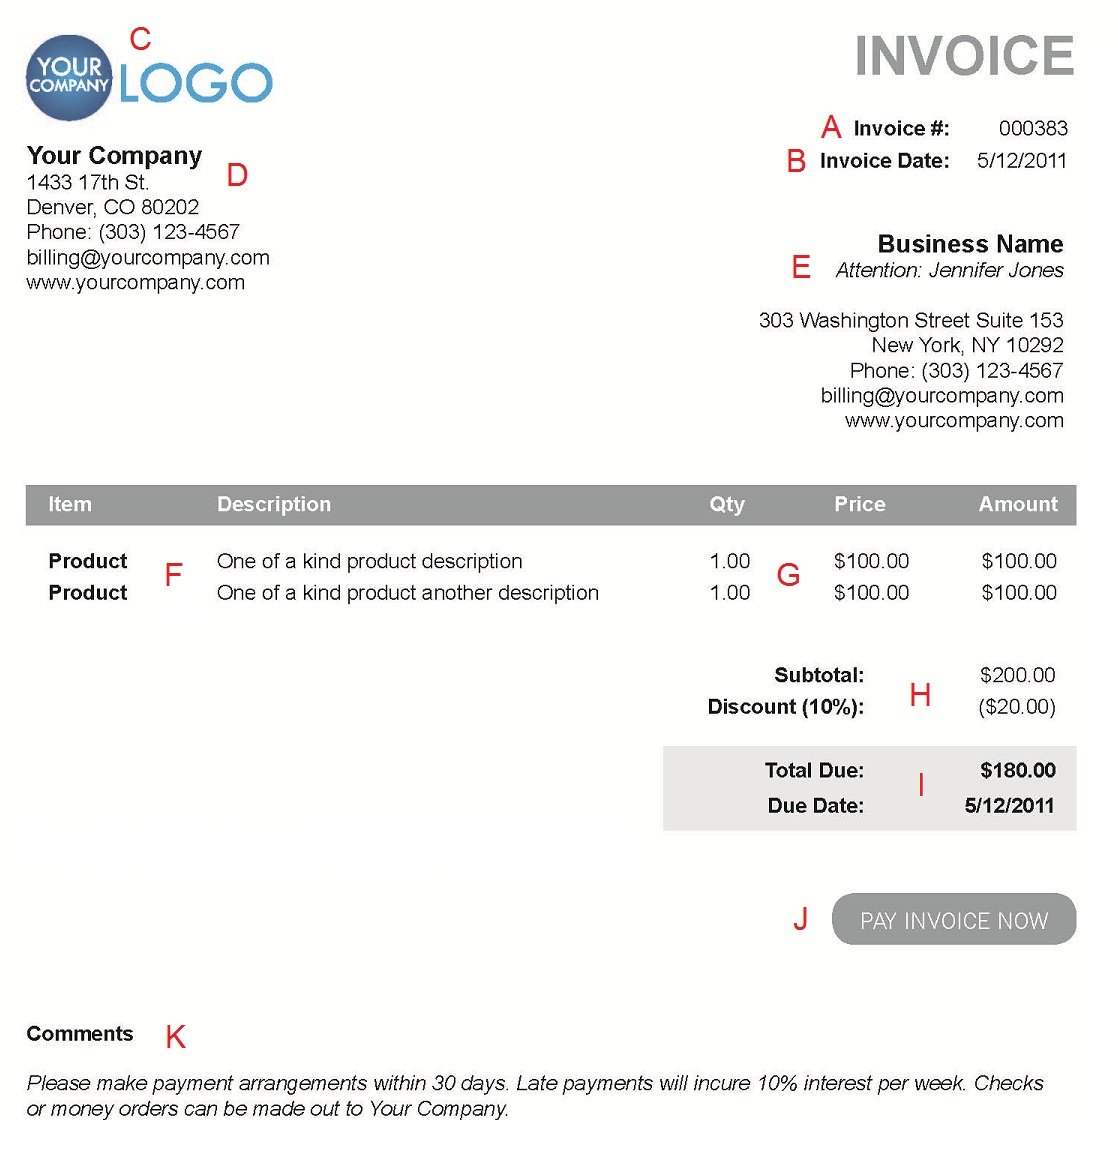 Aldiablosus  Inspiring The  Different Sections Of An Electronic Payment Invoice With Goodlooking A  With Captivating Web Invoice Template Also  Honda Civic Invoice Price In Addition Proforma Invoice Template Download Free And What Is An Invoice For As Well As Sample Invoice Uk Additionally Specimen Of Invoice From Paysimplecom With Aldiablosus  Goodlooking The  Different Sections Of An Electronic Payment Invoice With Captivating A  And Inspiring Web Invoice Template Also  Honda Civic Invoice Price In Addition Proforma Invoice Template Download Free From Paysimplecom